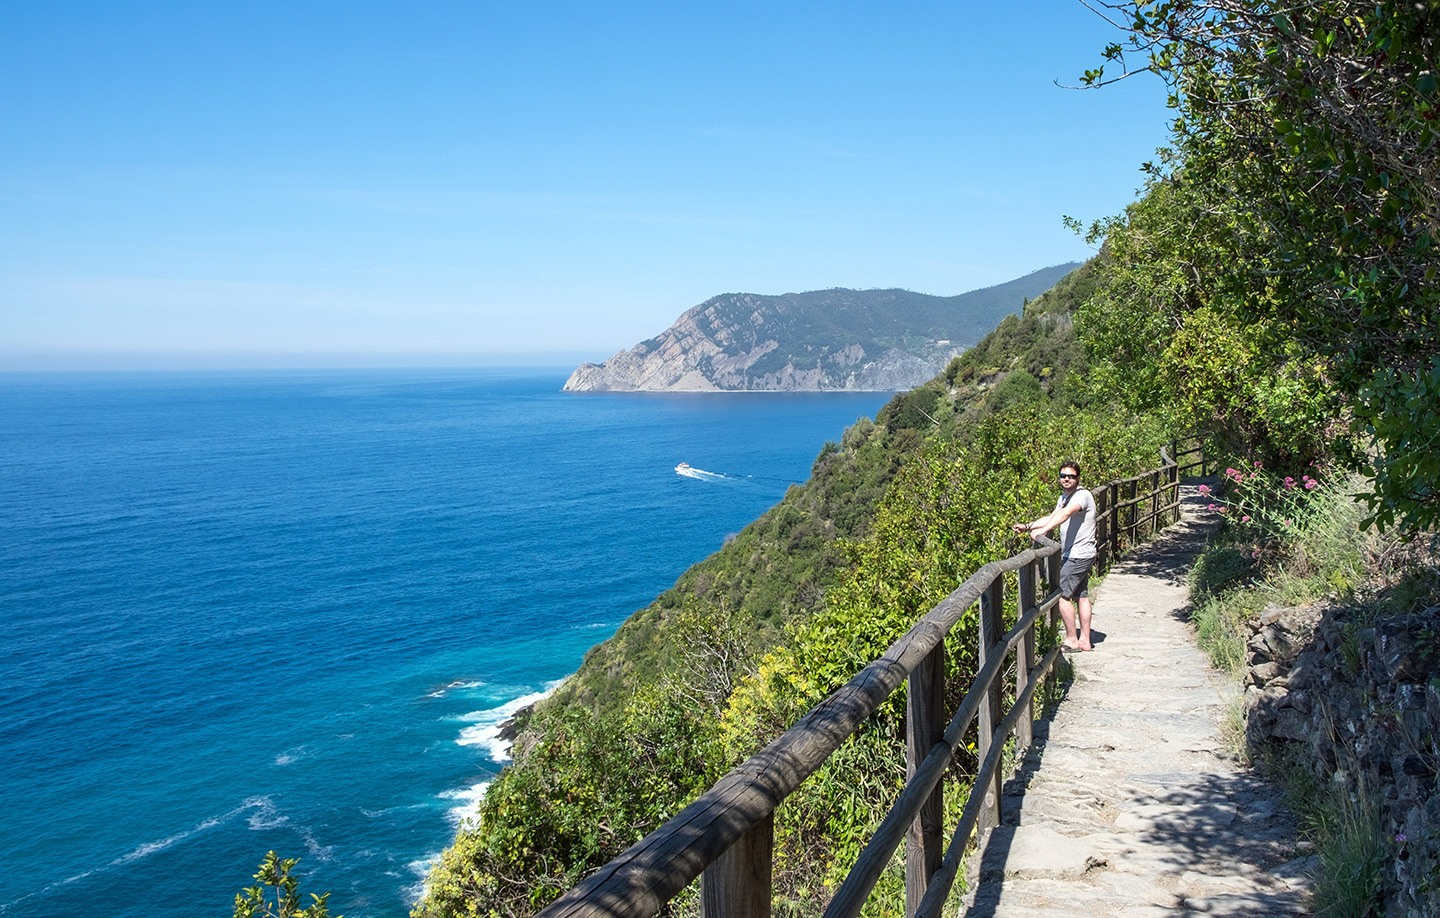 The first-timers guide to visiting the Cinque Terre – walking